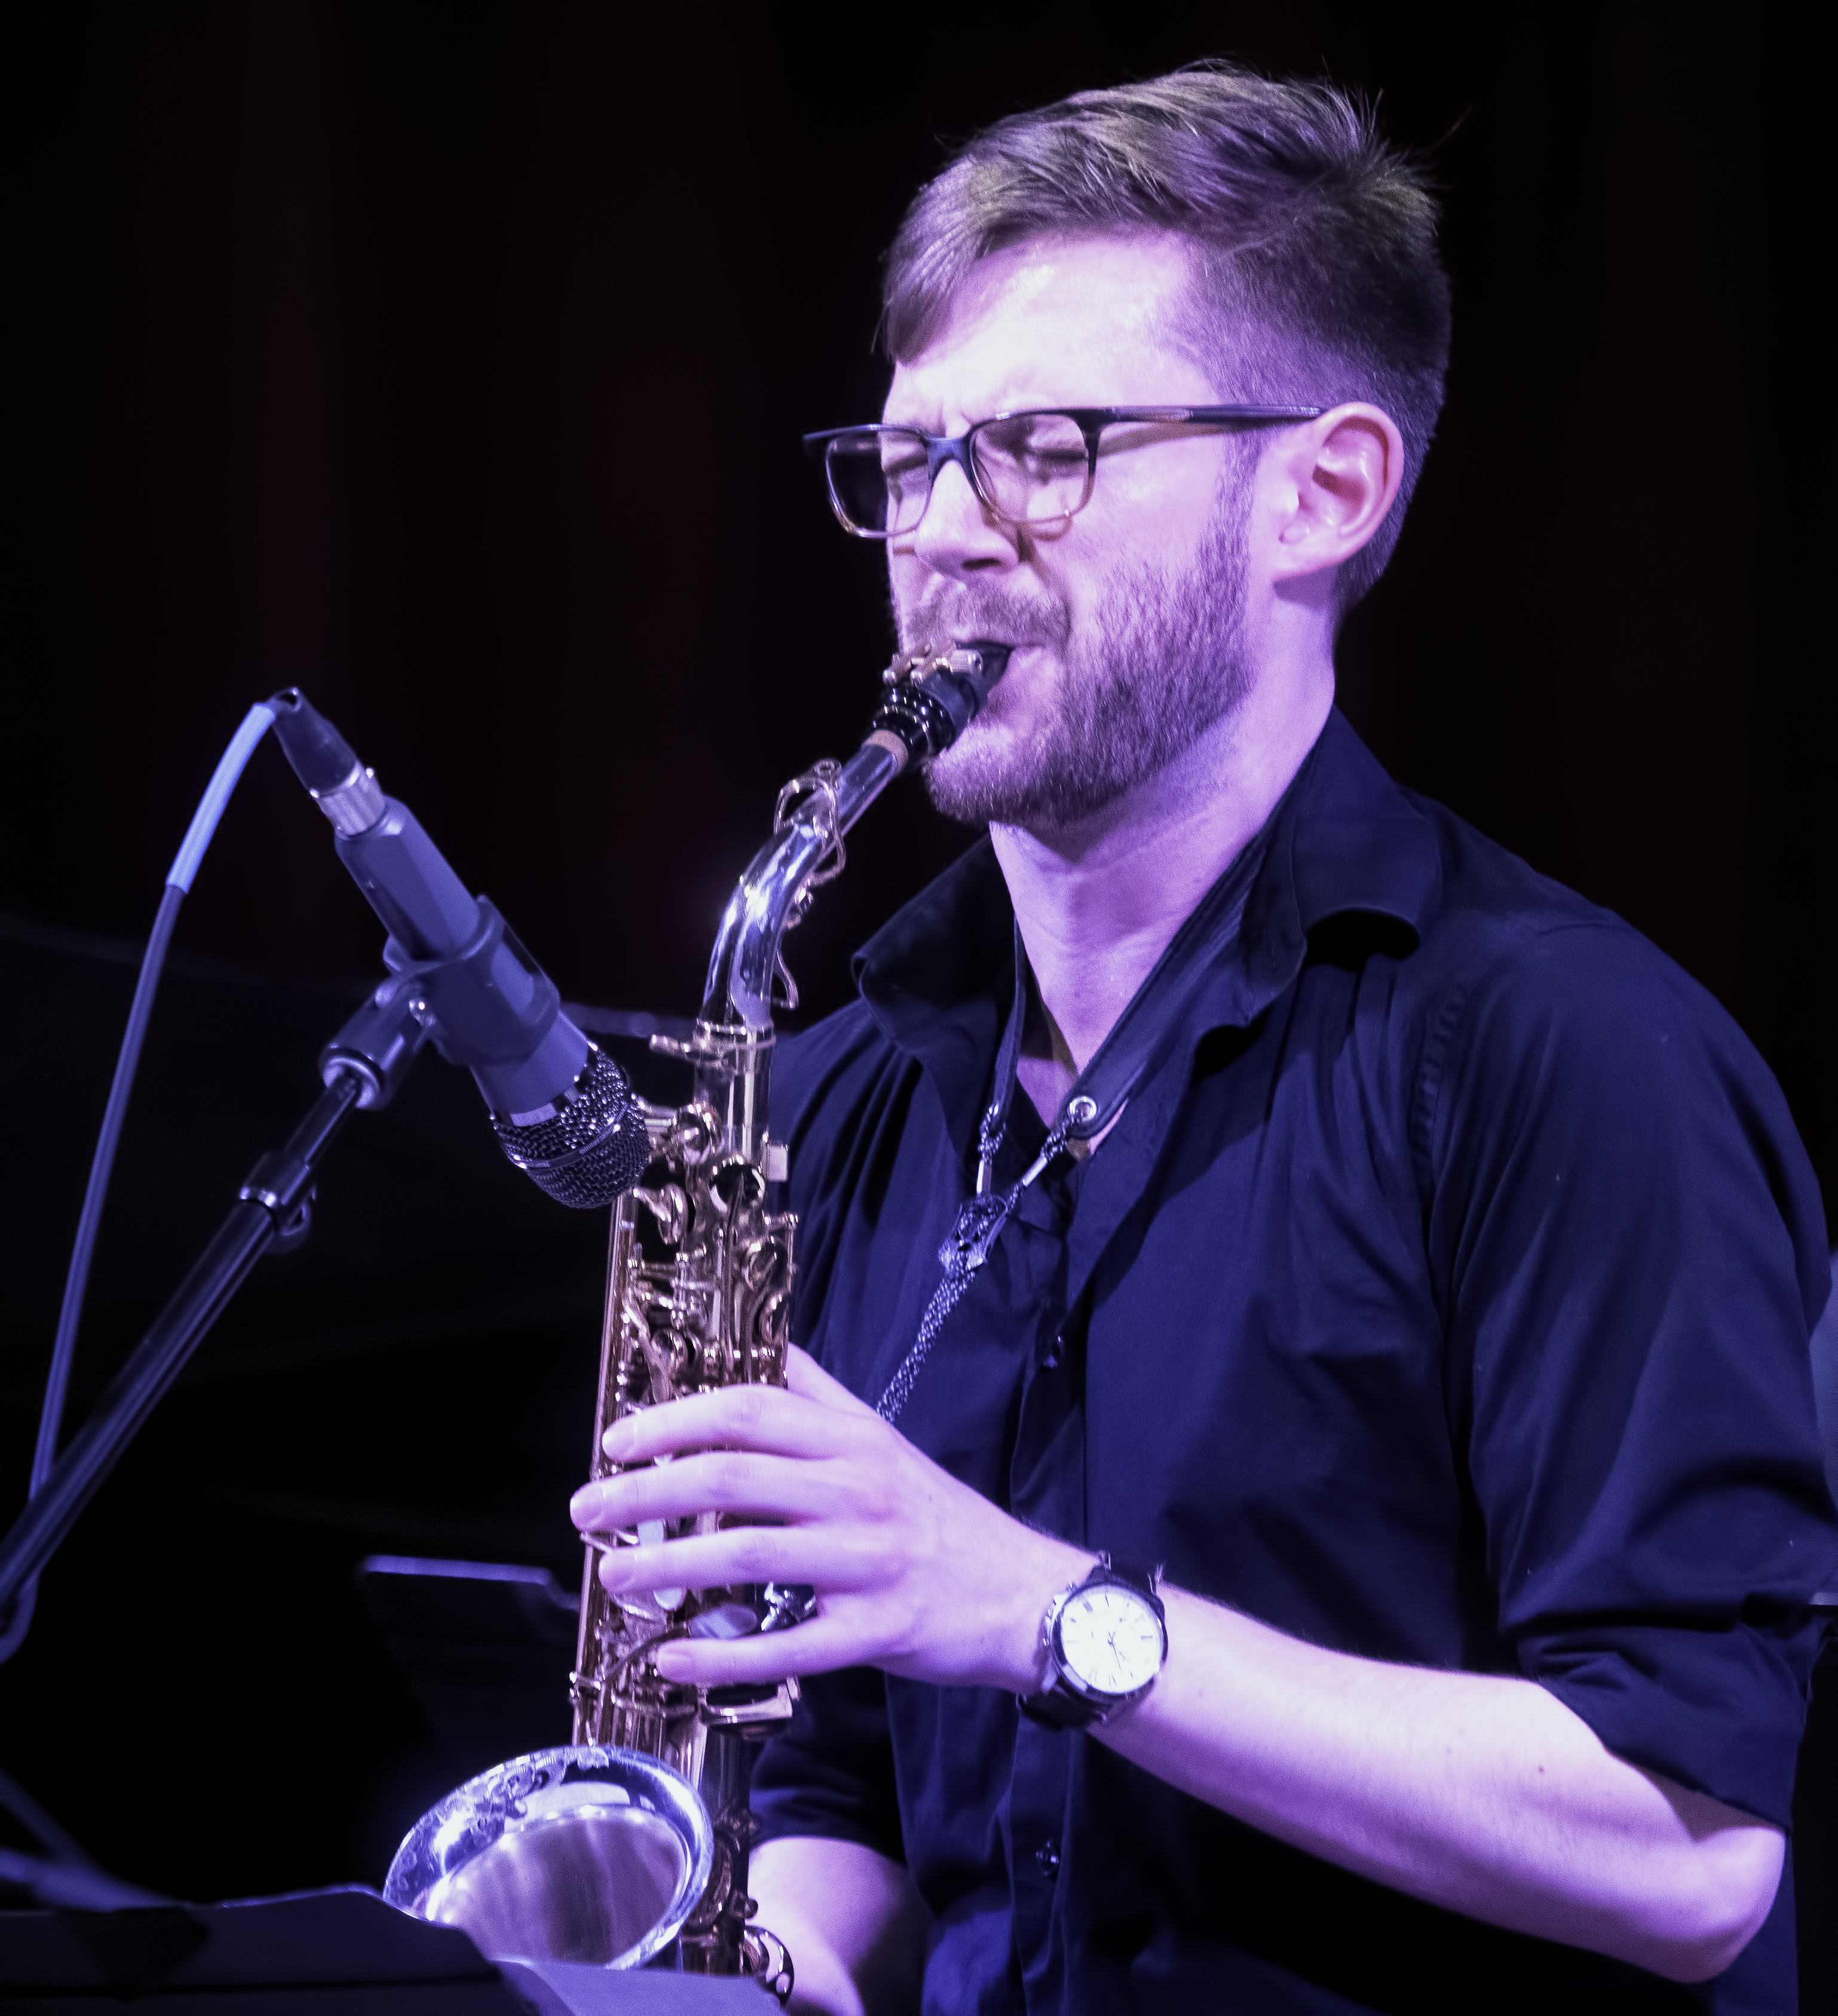 Nathan Reising with the Tyshawn Sorey Sextet at the NYC Jazz Gallery